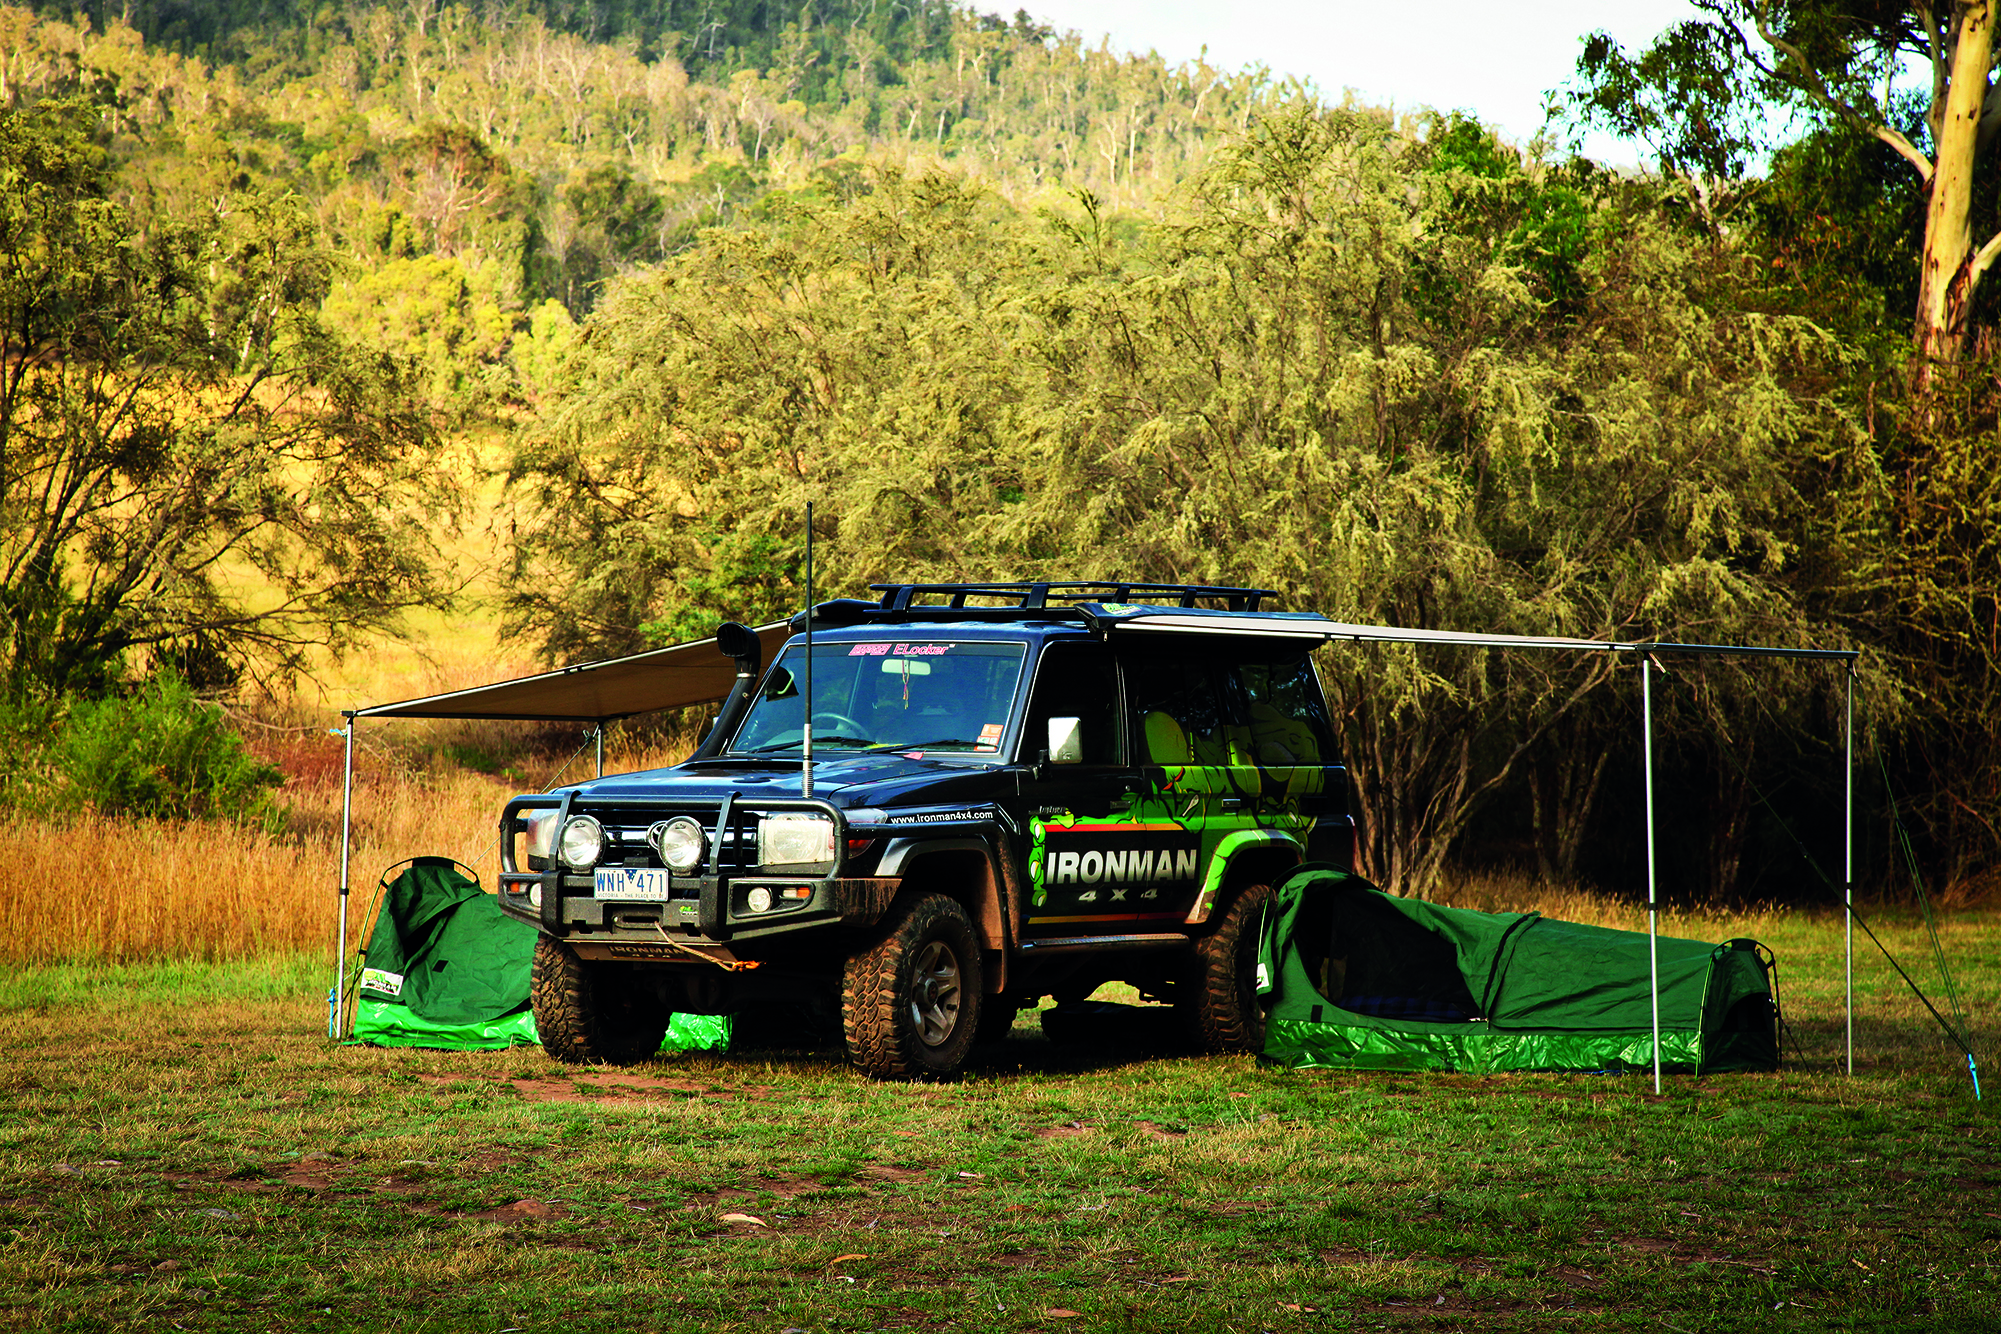 awning-on-76-landcruiser.jpg